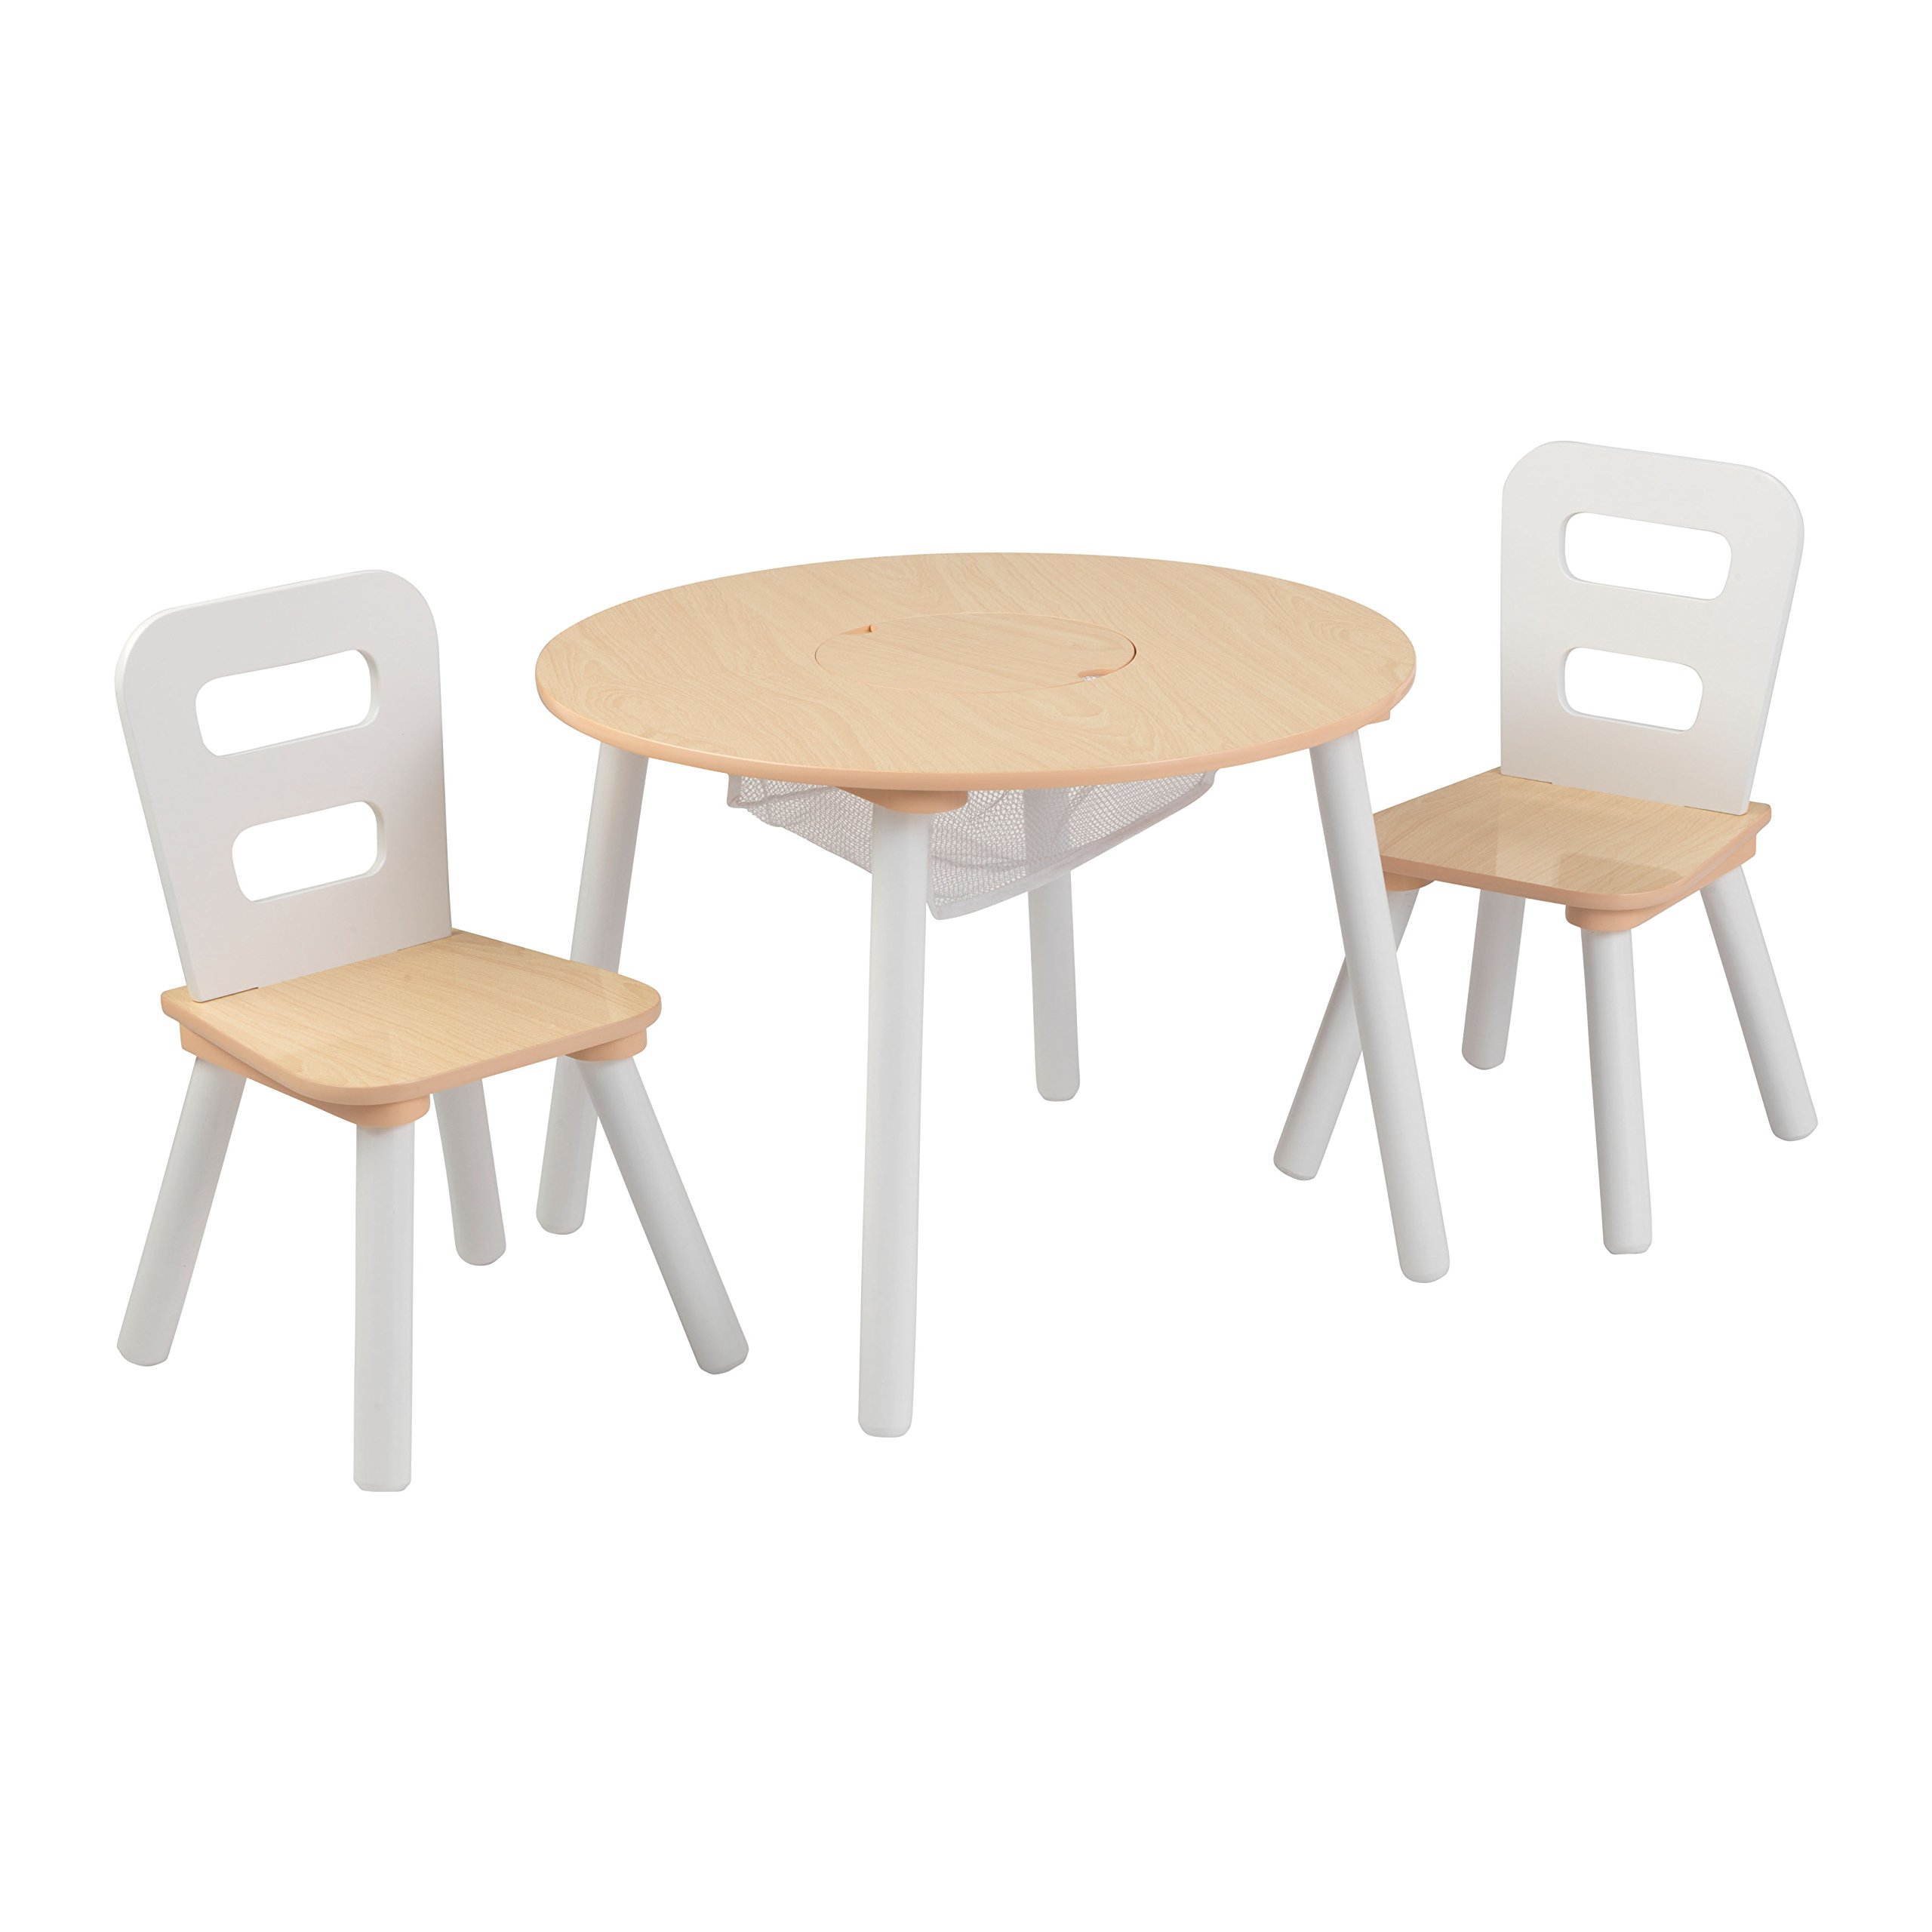 KidKraft Round Table and 2 Chair Set, White/Natural by KidKraft